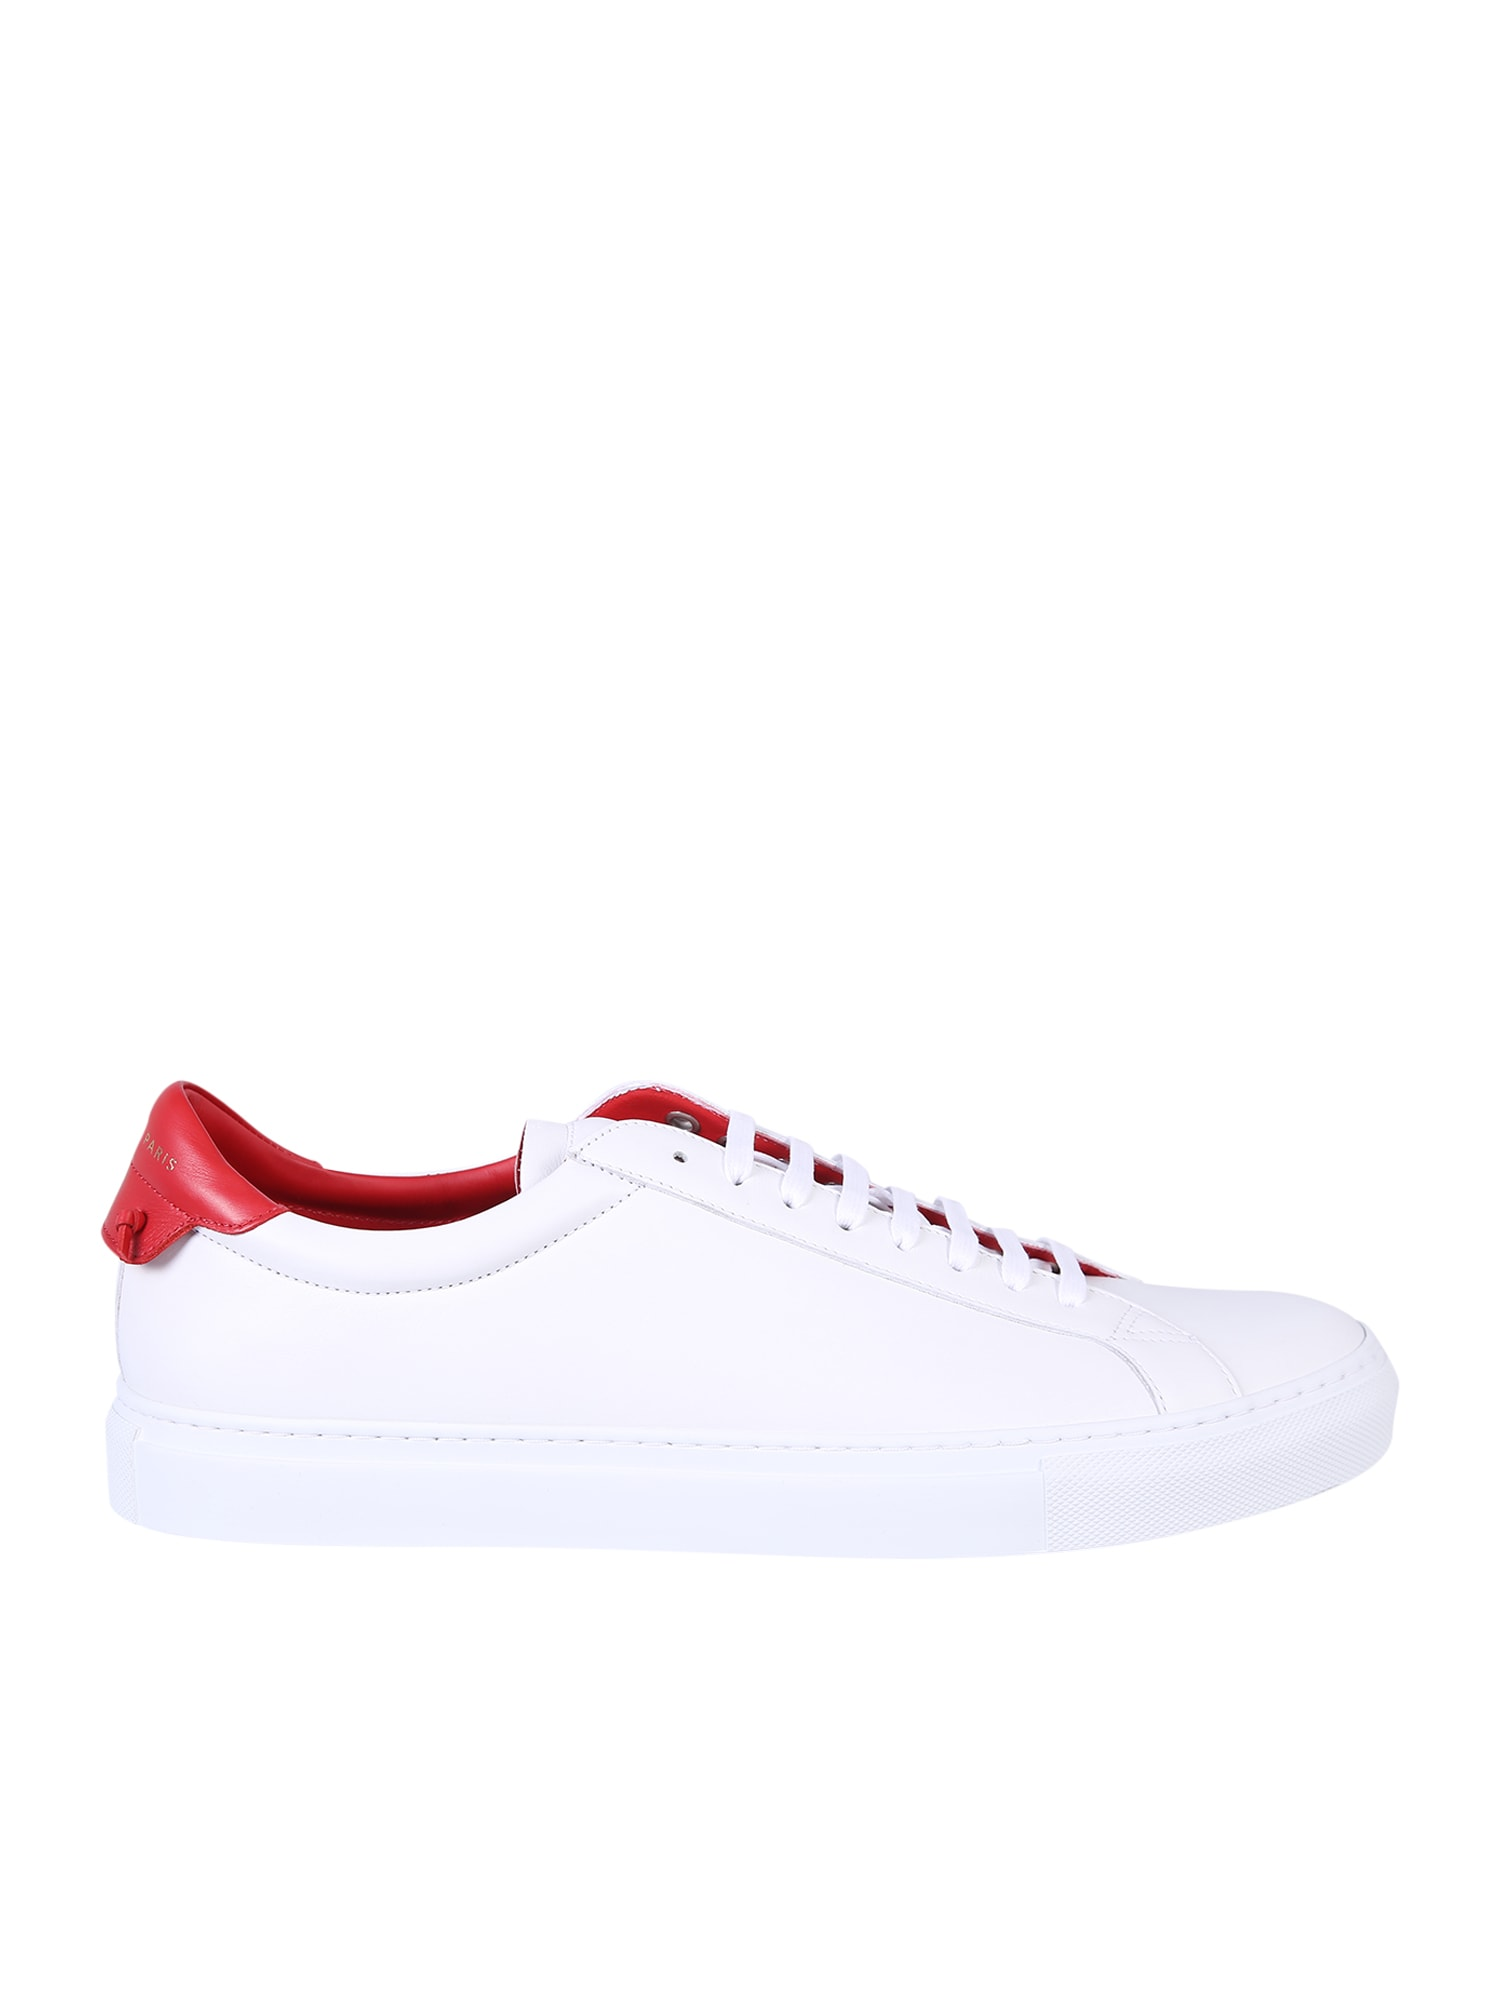 Givenchy Sneakers URBAN SNEAKERS